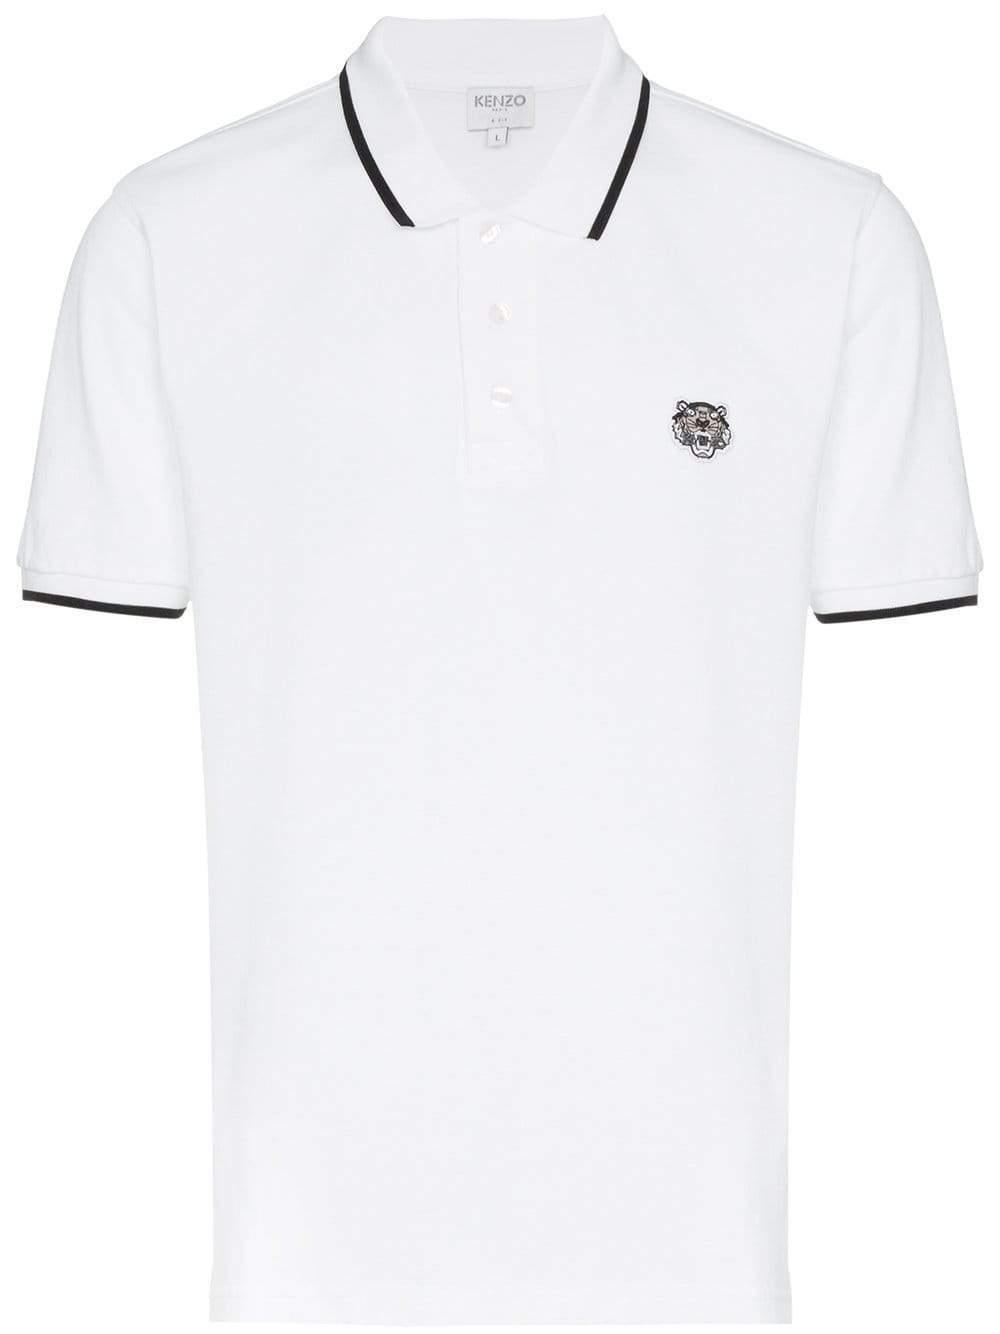 46fee34f64c0 KENZO - White K Fit Tiger for Men - Lyst. View fullscreen